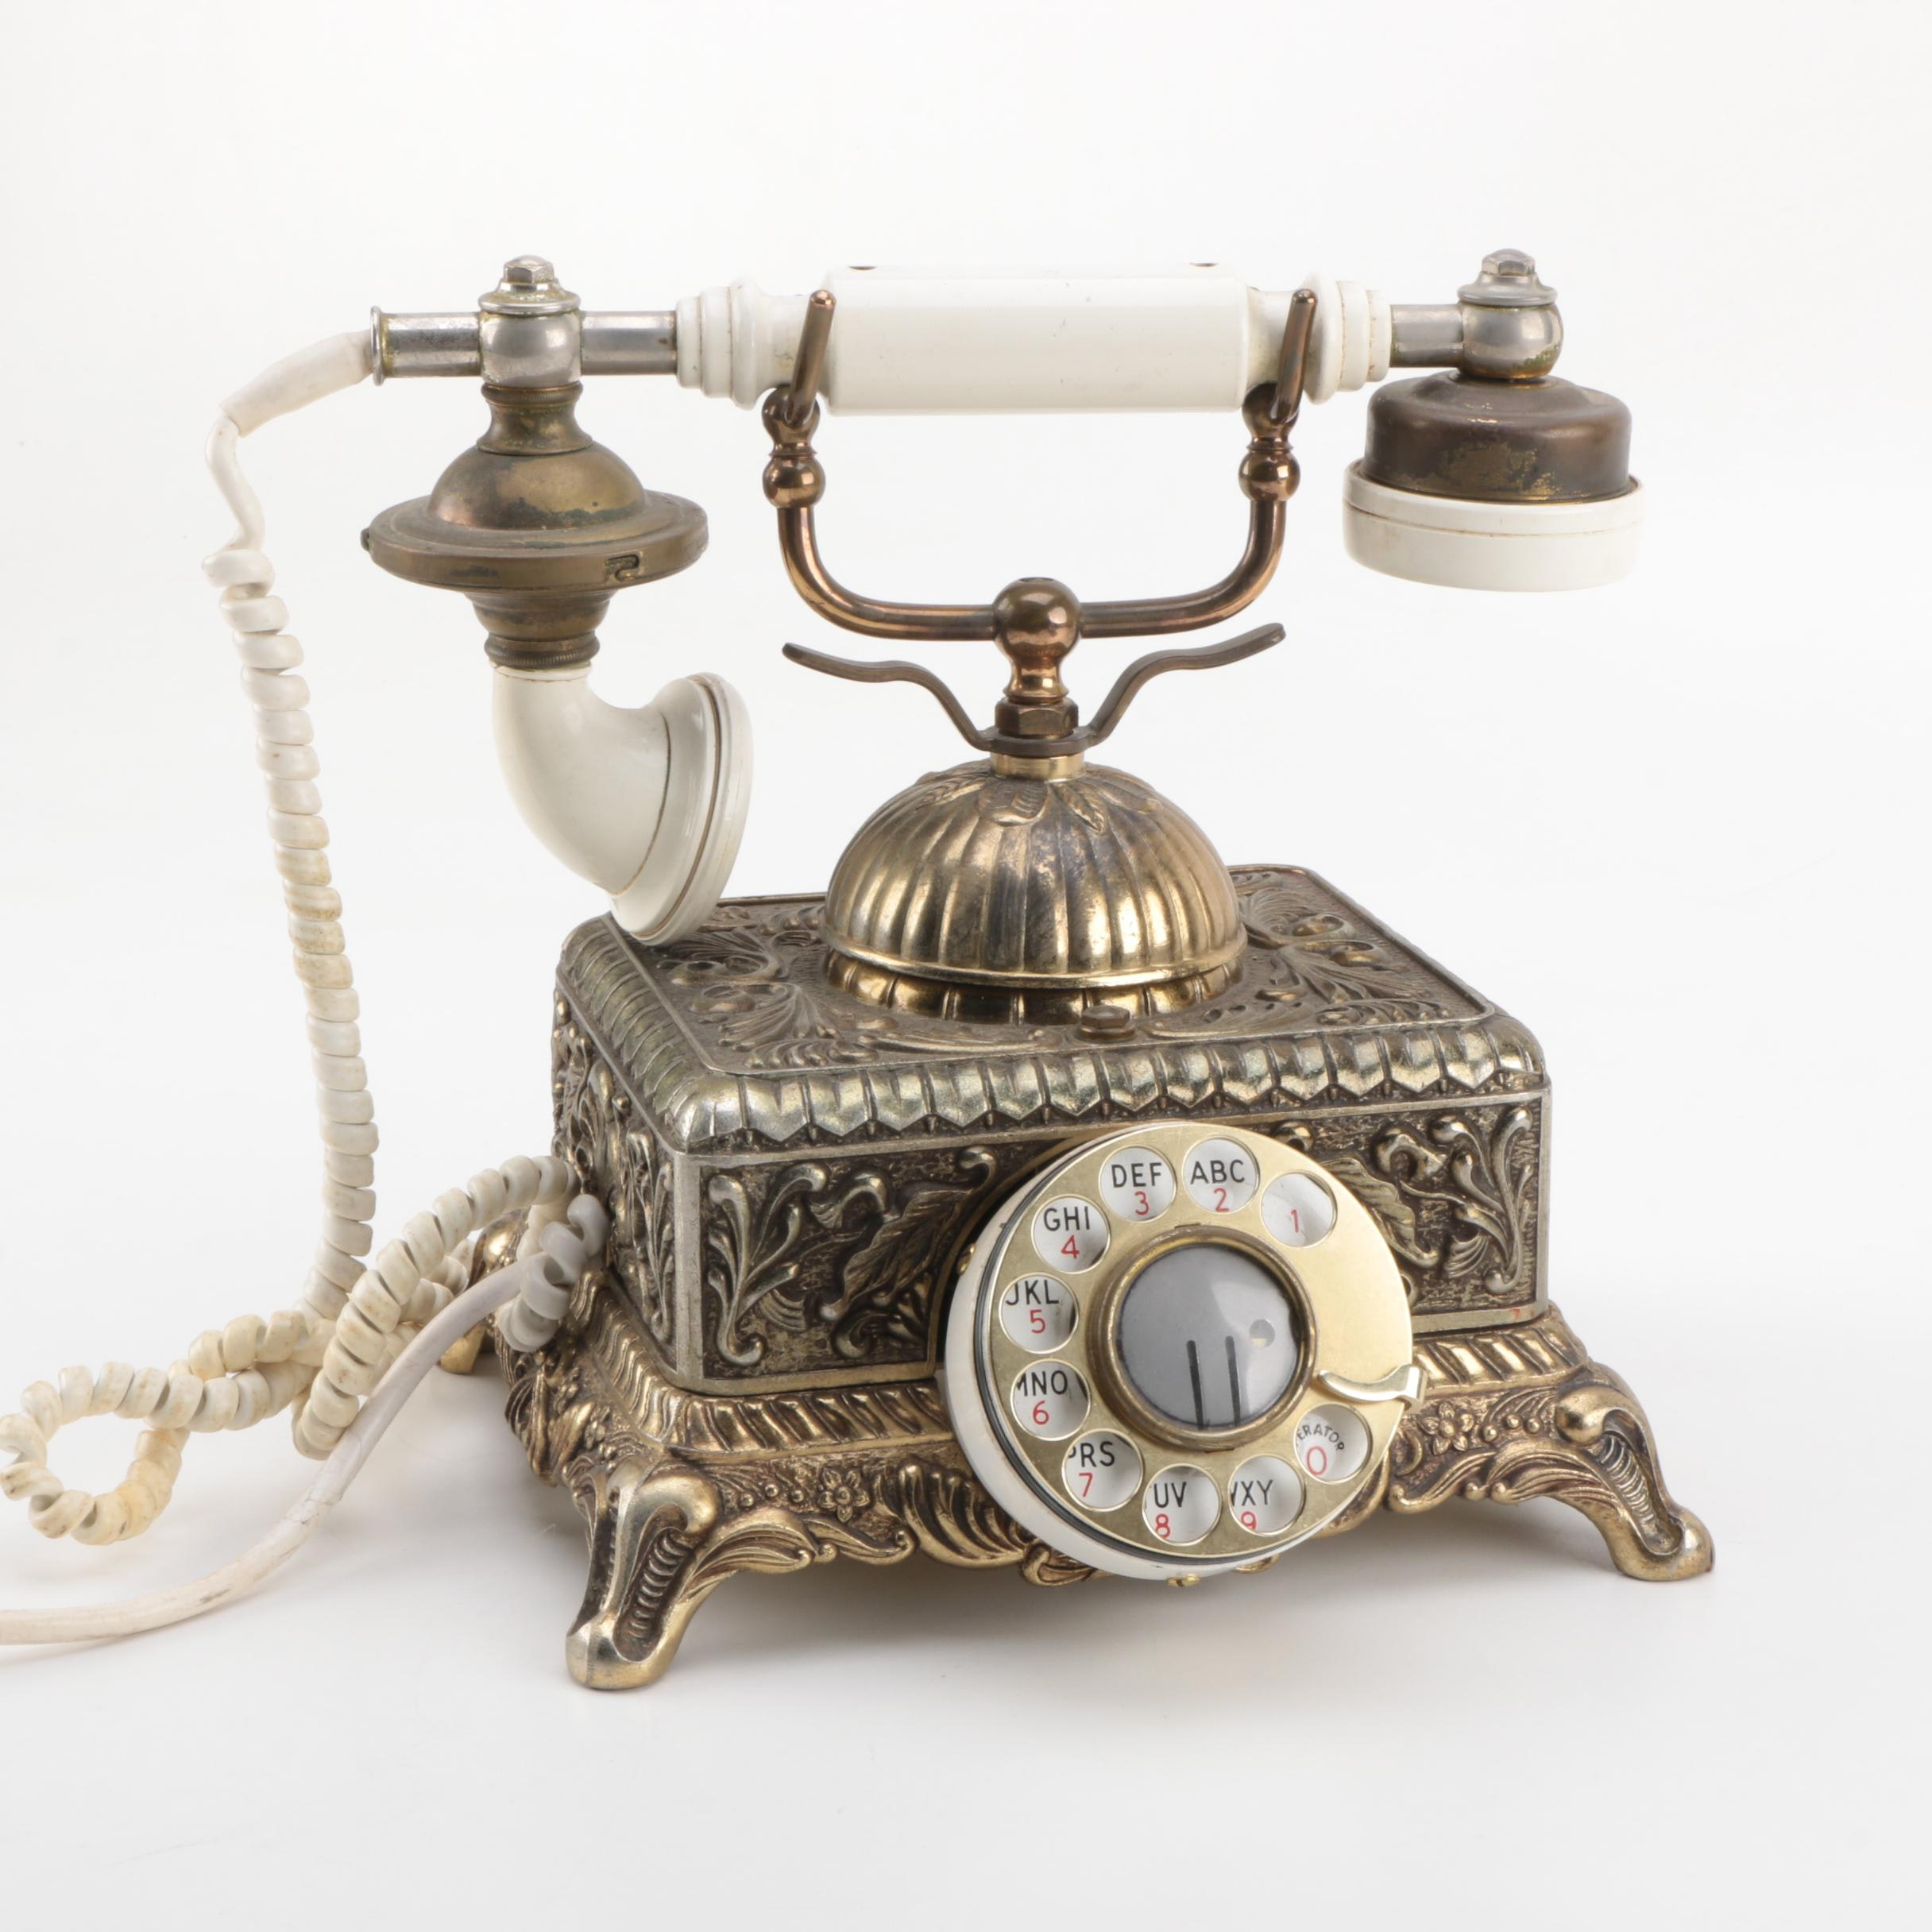 Vintage Bell System Rotary Telephone